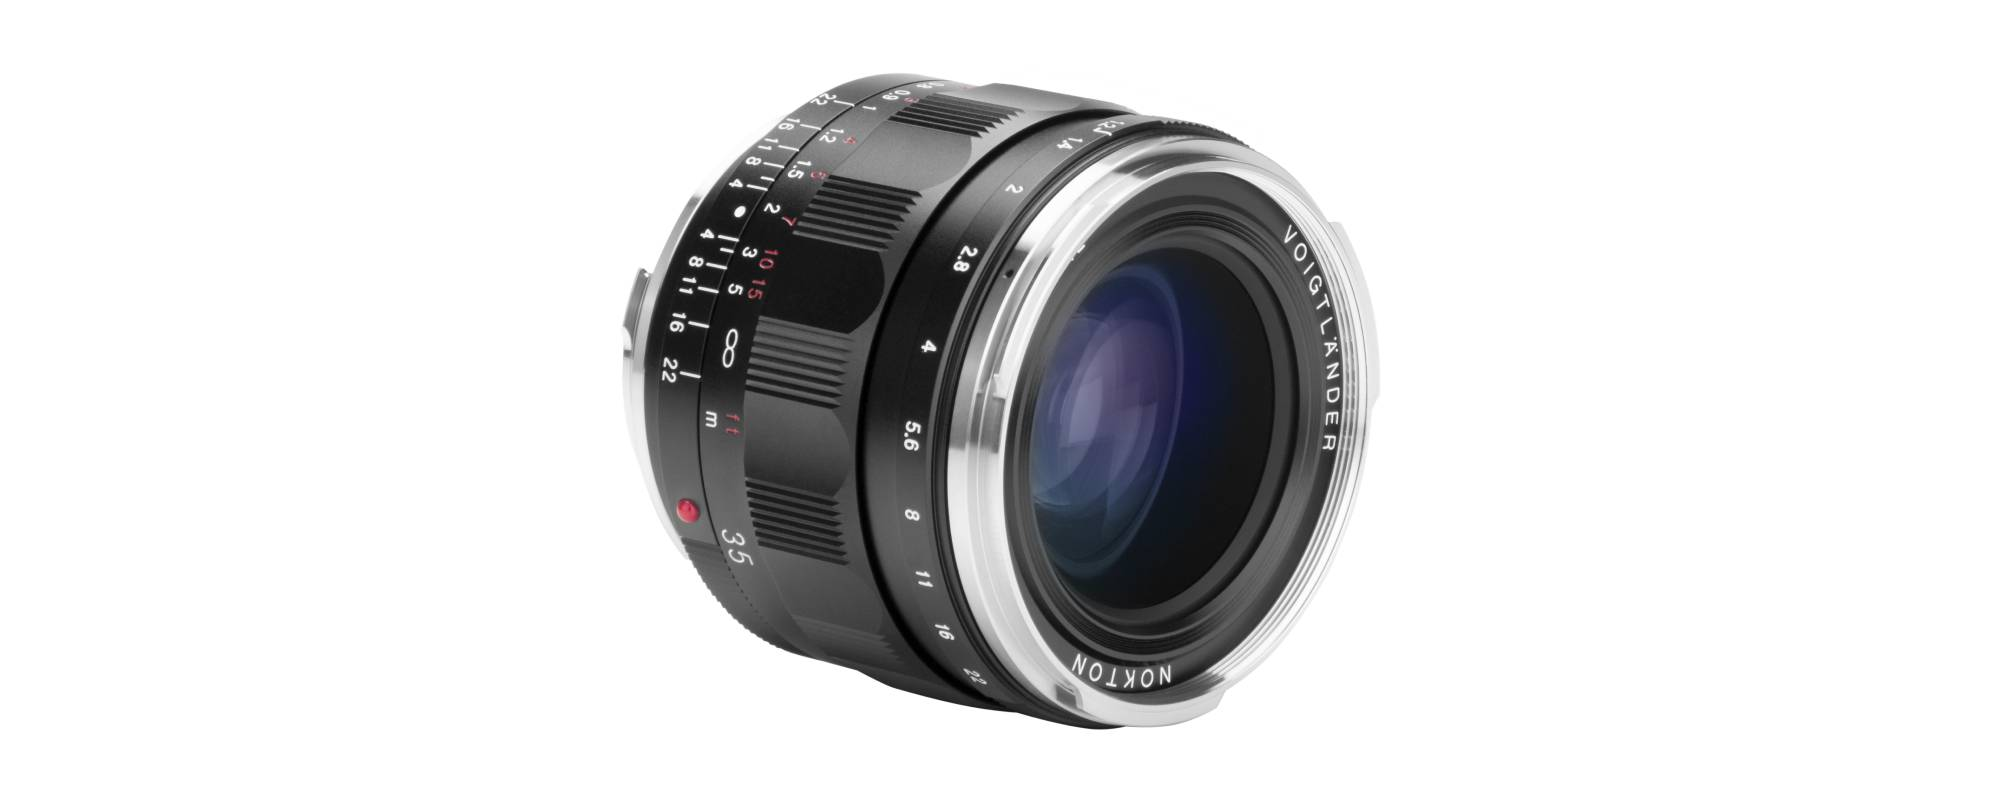 Voigtlander Nokton III 35mm f/1.2 lens for Leica M front view